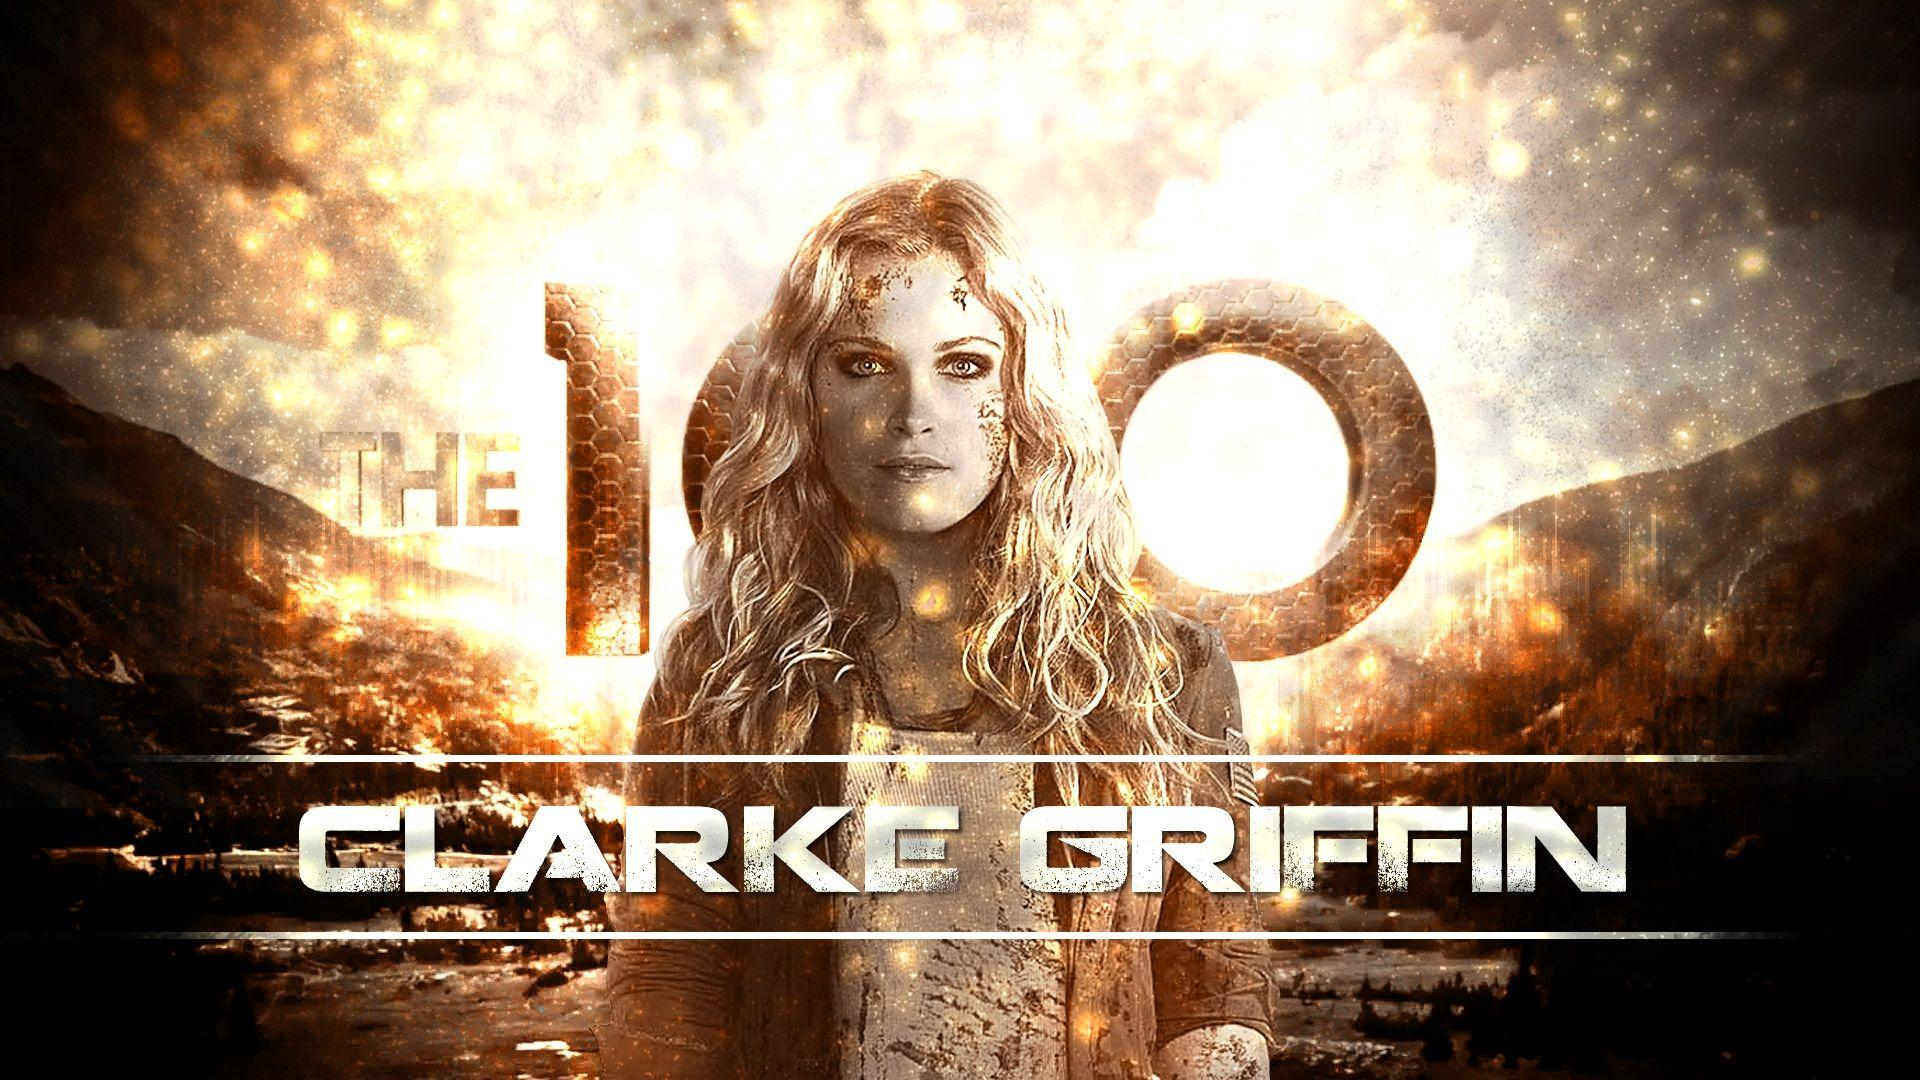 Bellamy And Clarke The 100 Wallpapers - Wallpaper Cave